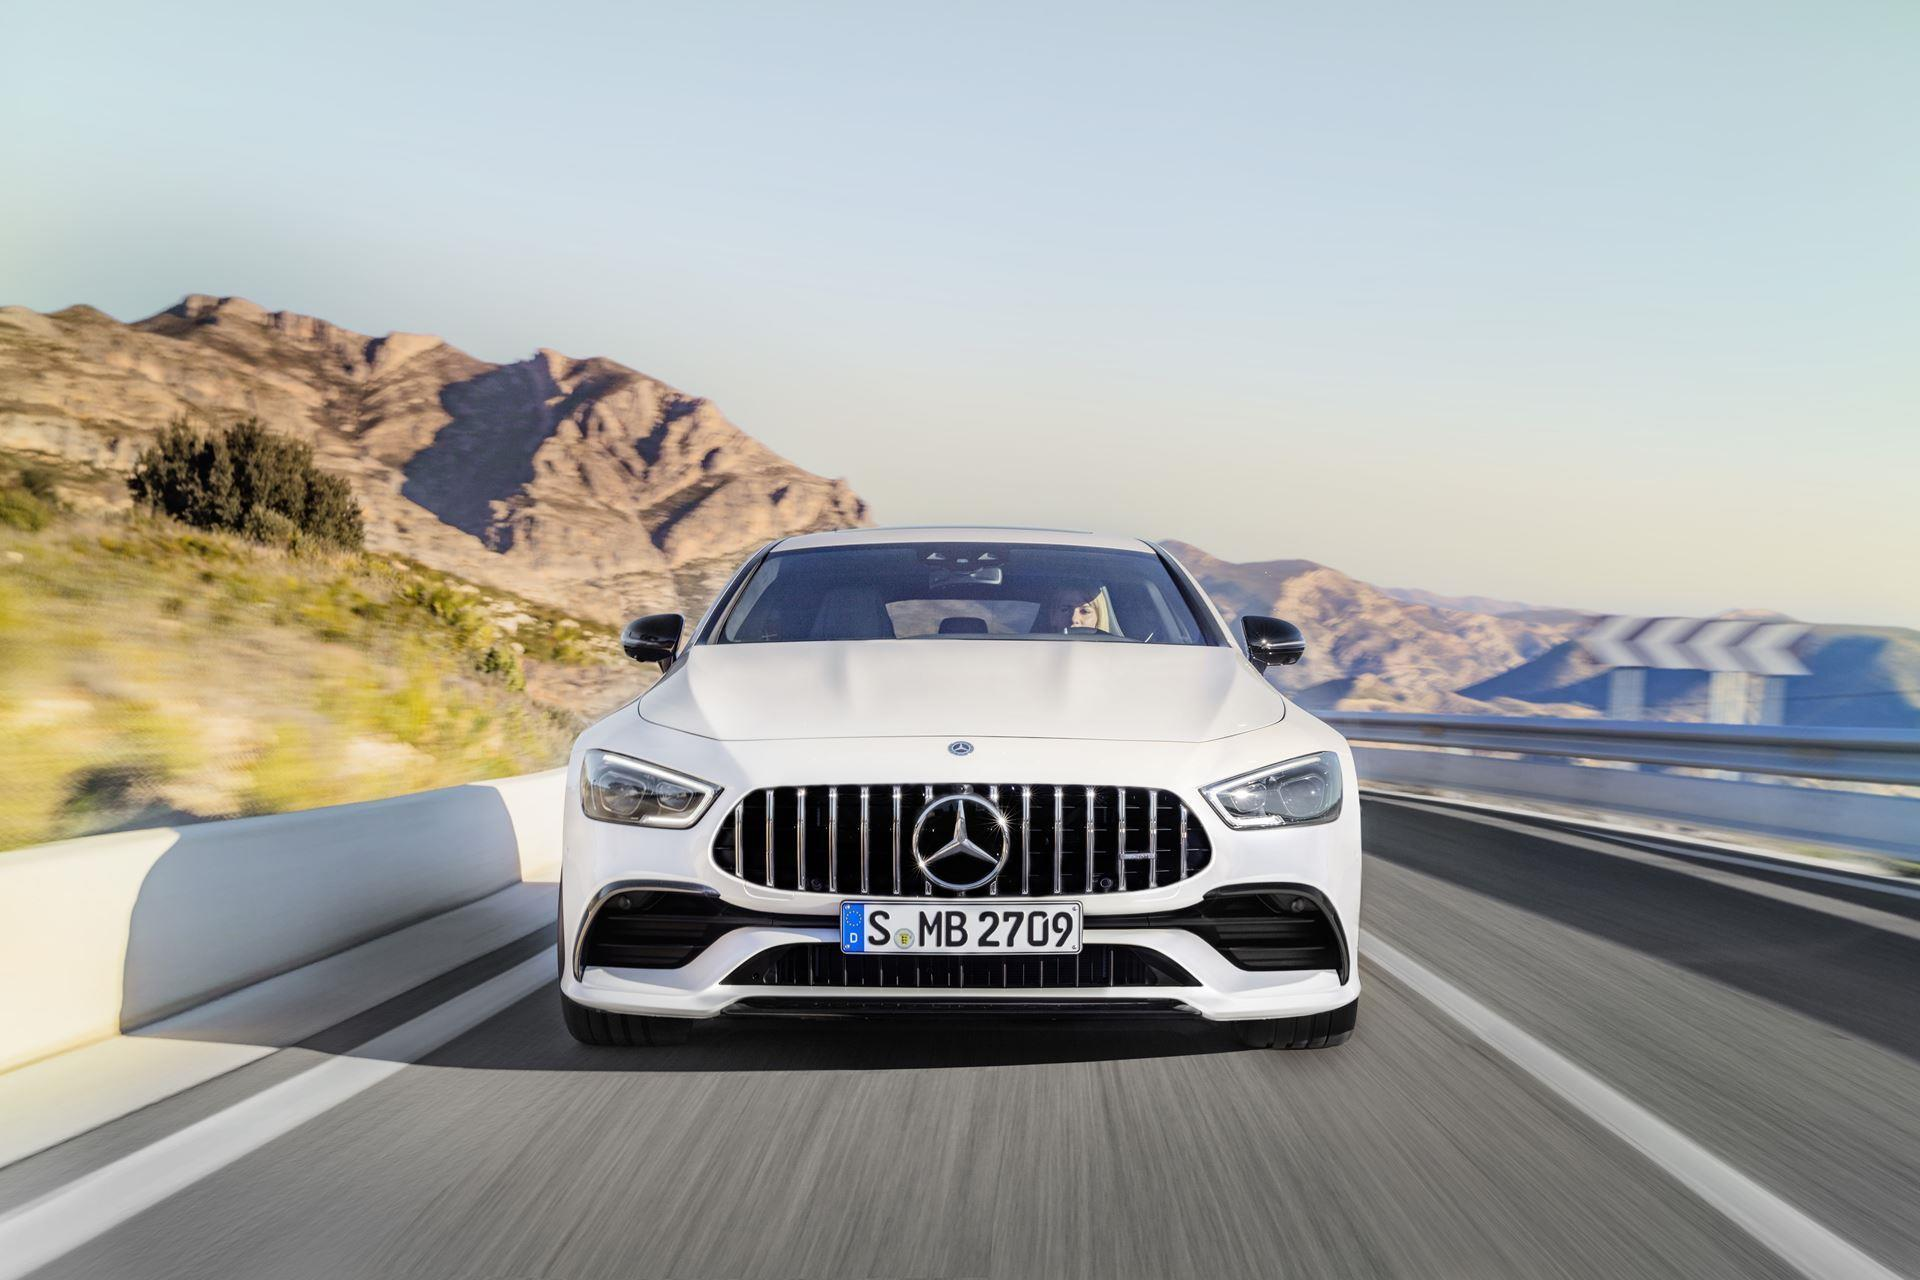 2018 Mercedes-Benz AMG GT 4-Door Coupe